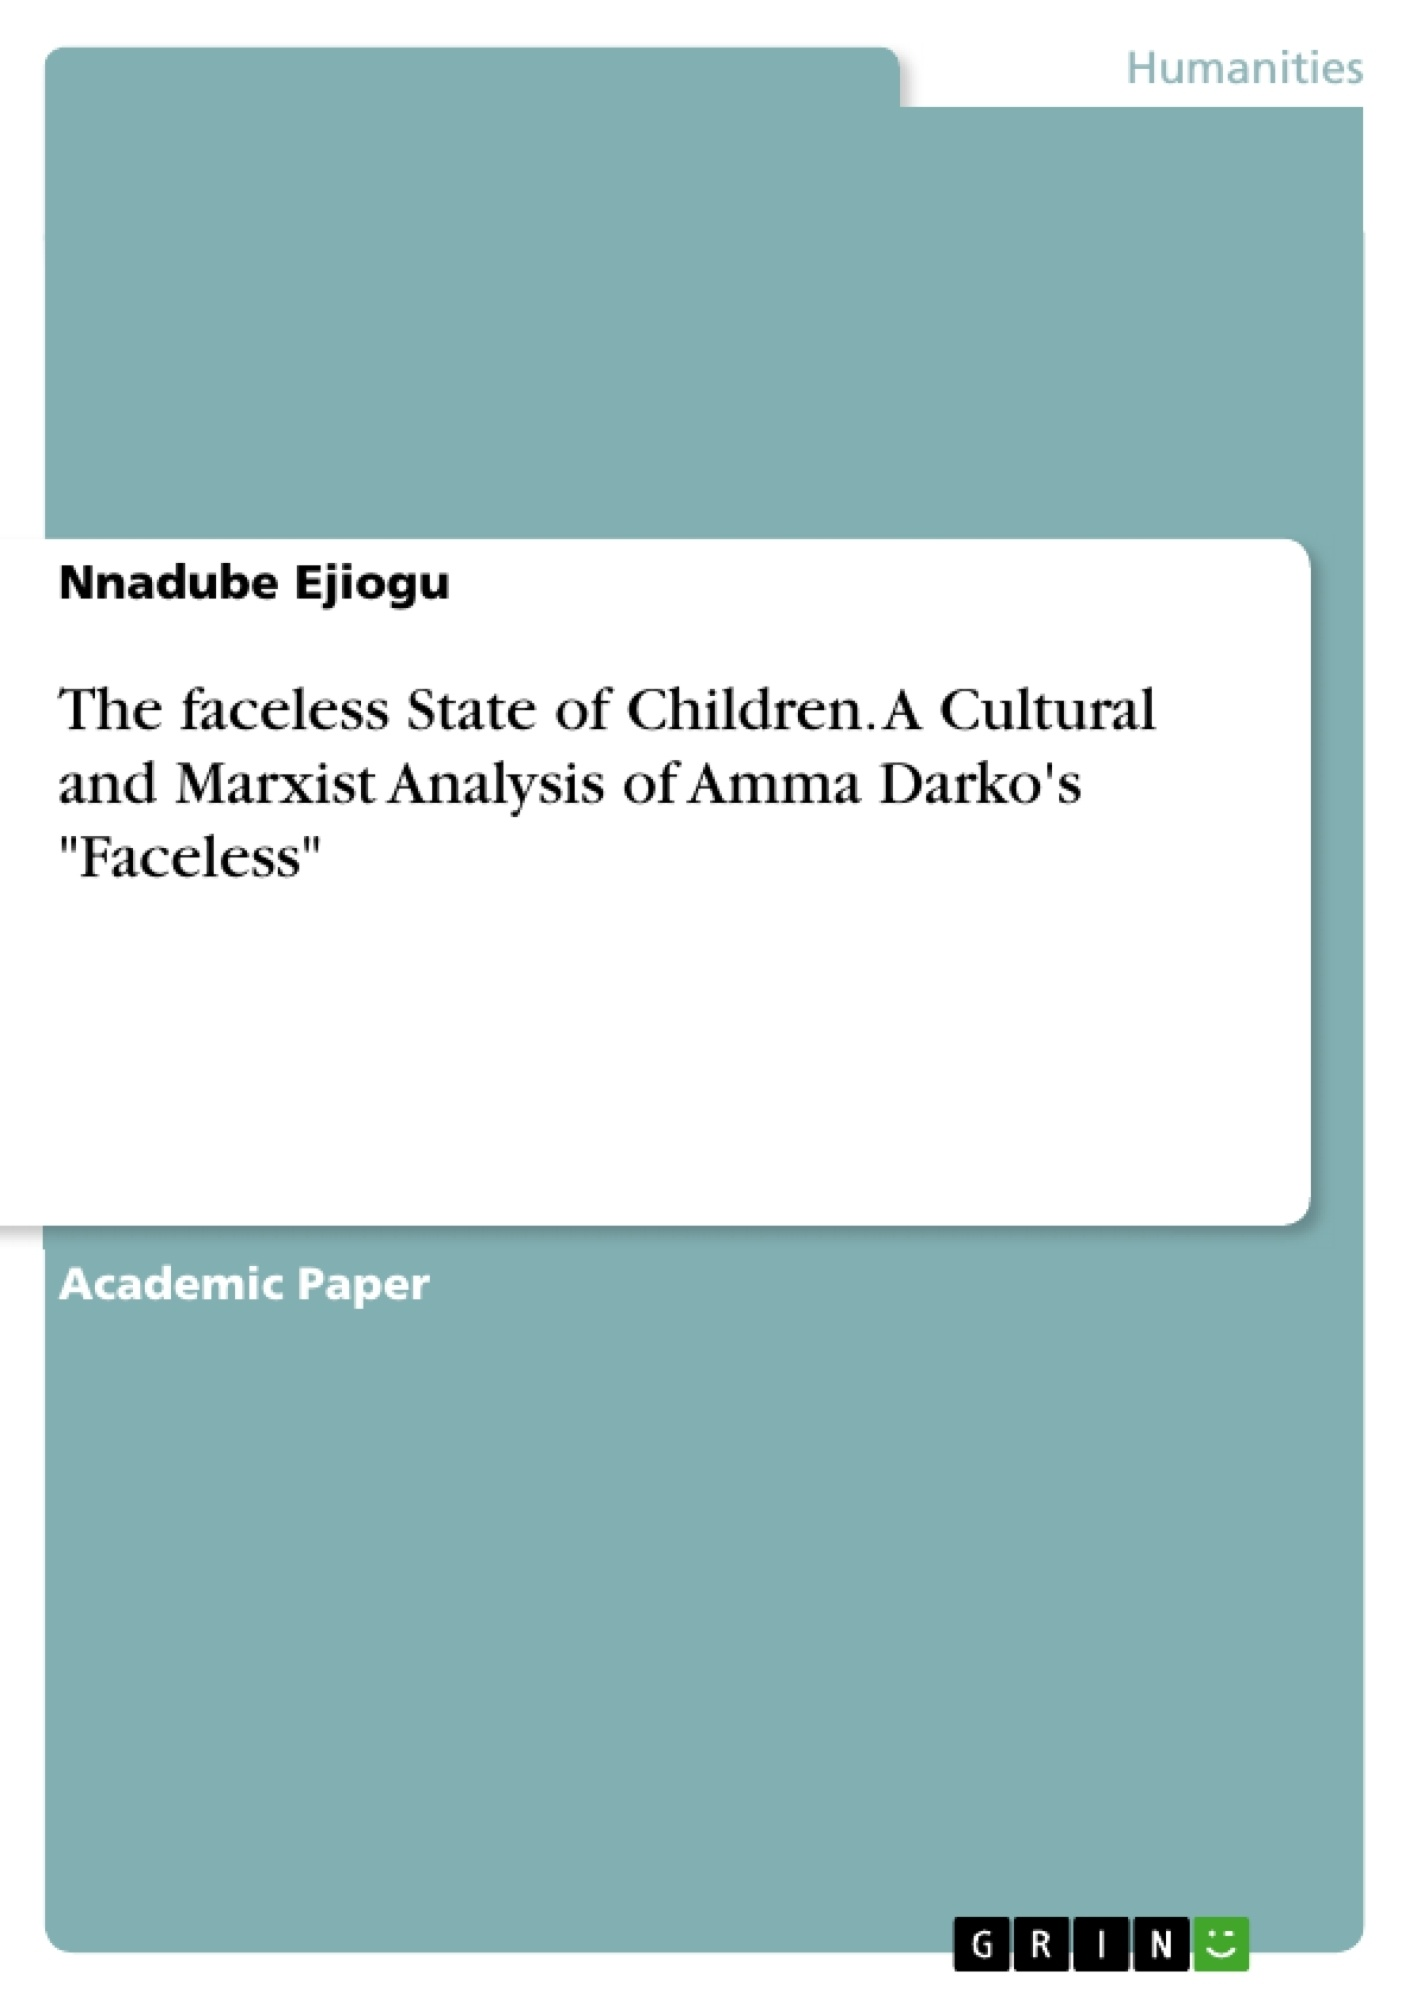 """Title: The faceless State of Children. A Cultural and Marxist Analysis of Amma Darko's """"Faceless"""""""